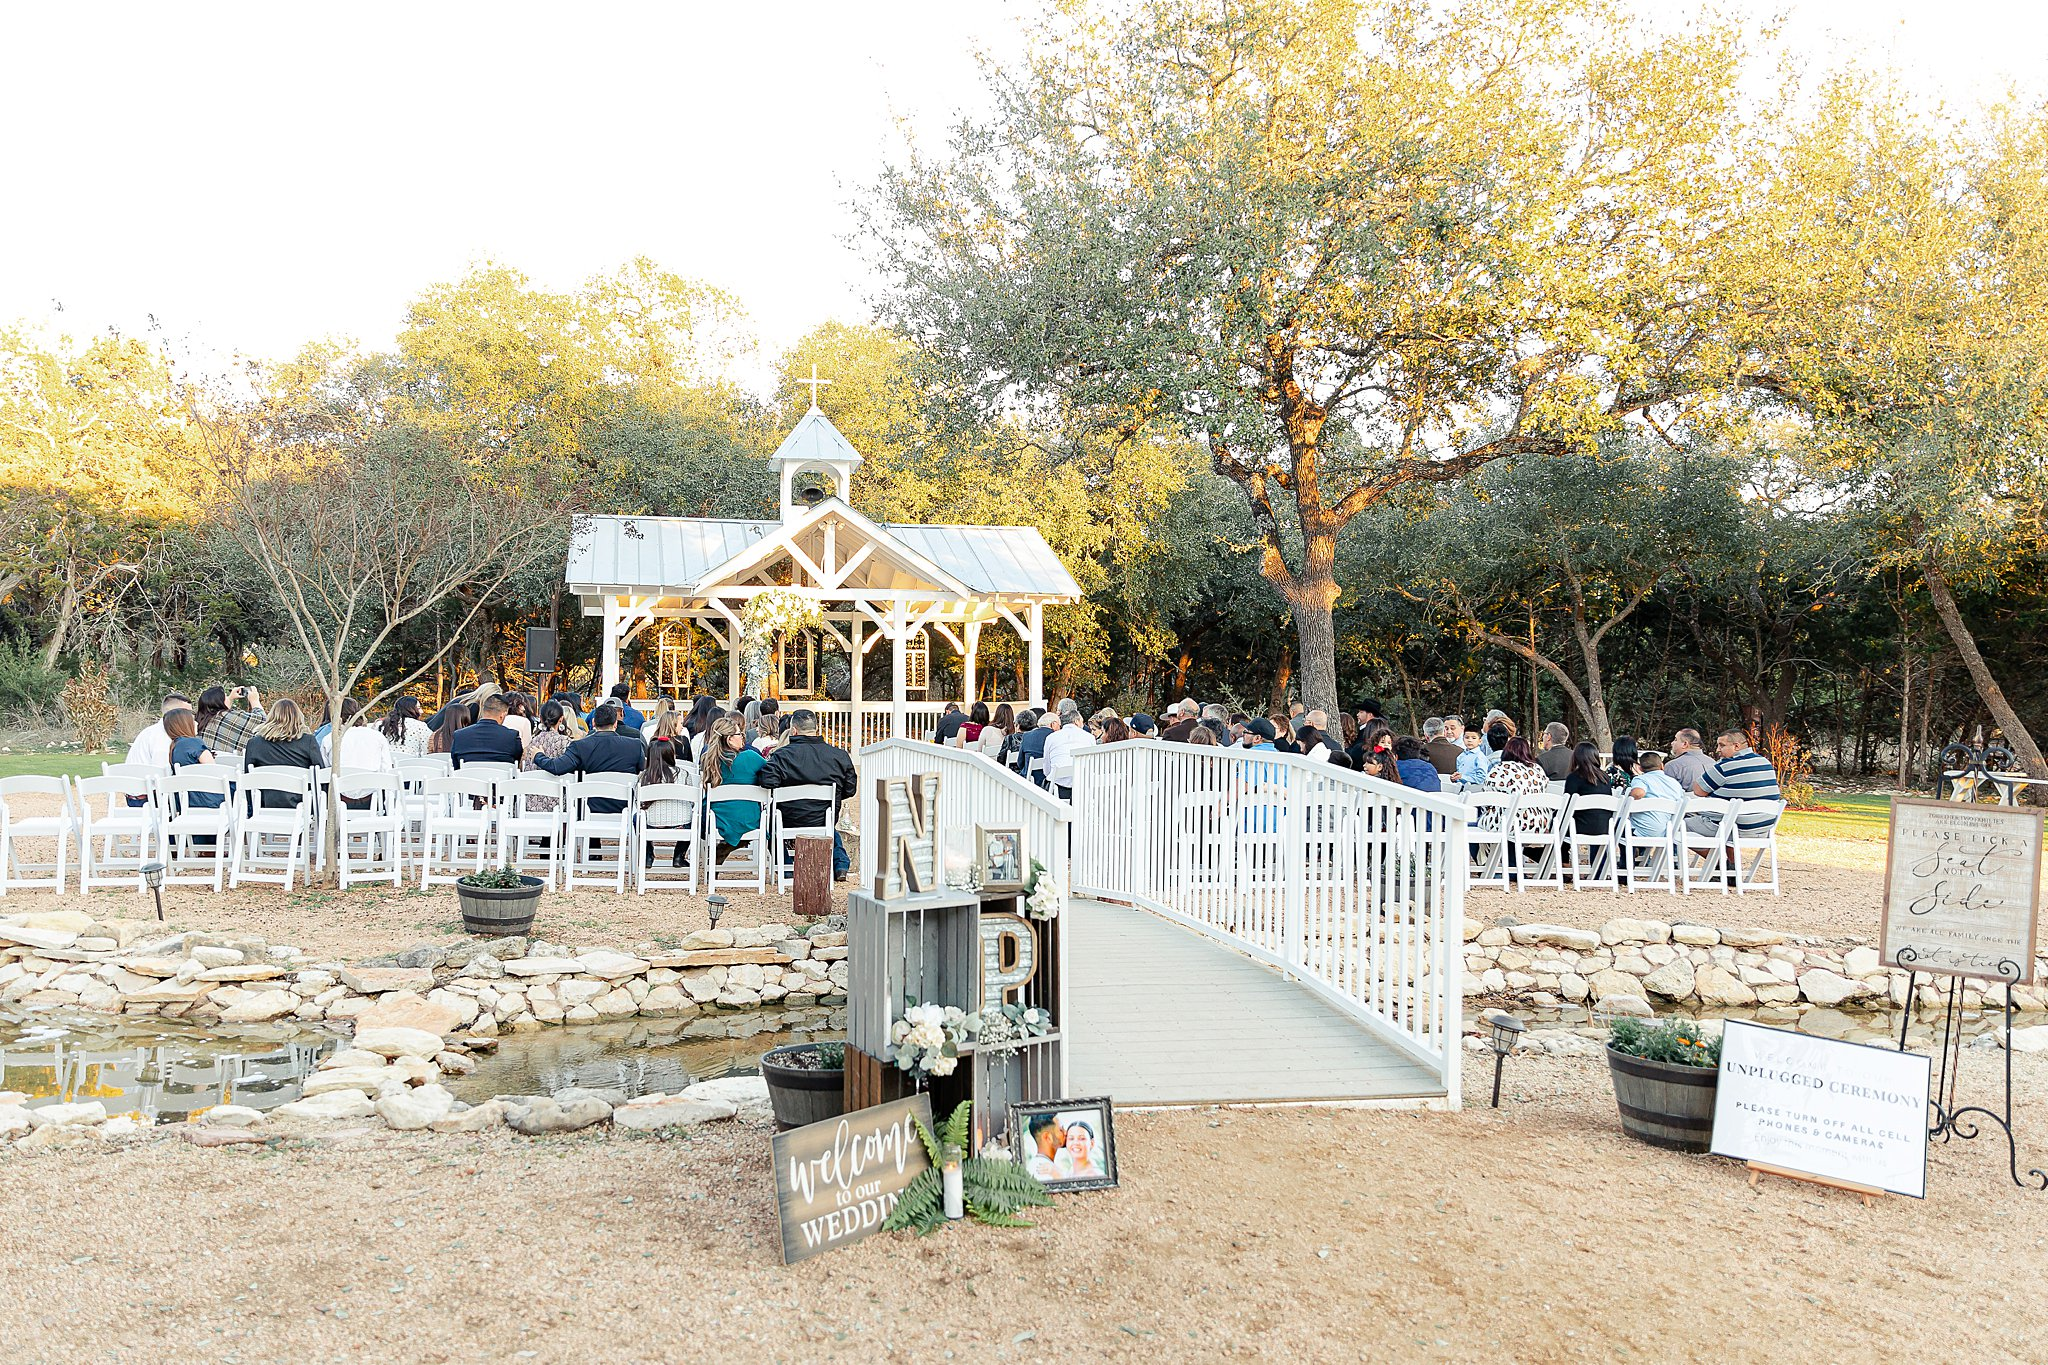 Carly-Barton-Photography-Texas-Wedding-Photographer-Western-Sky-Wedding-Event-Venue-Emerald-Green-Theme_0021.jpg